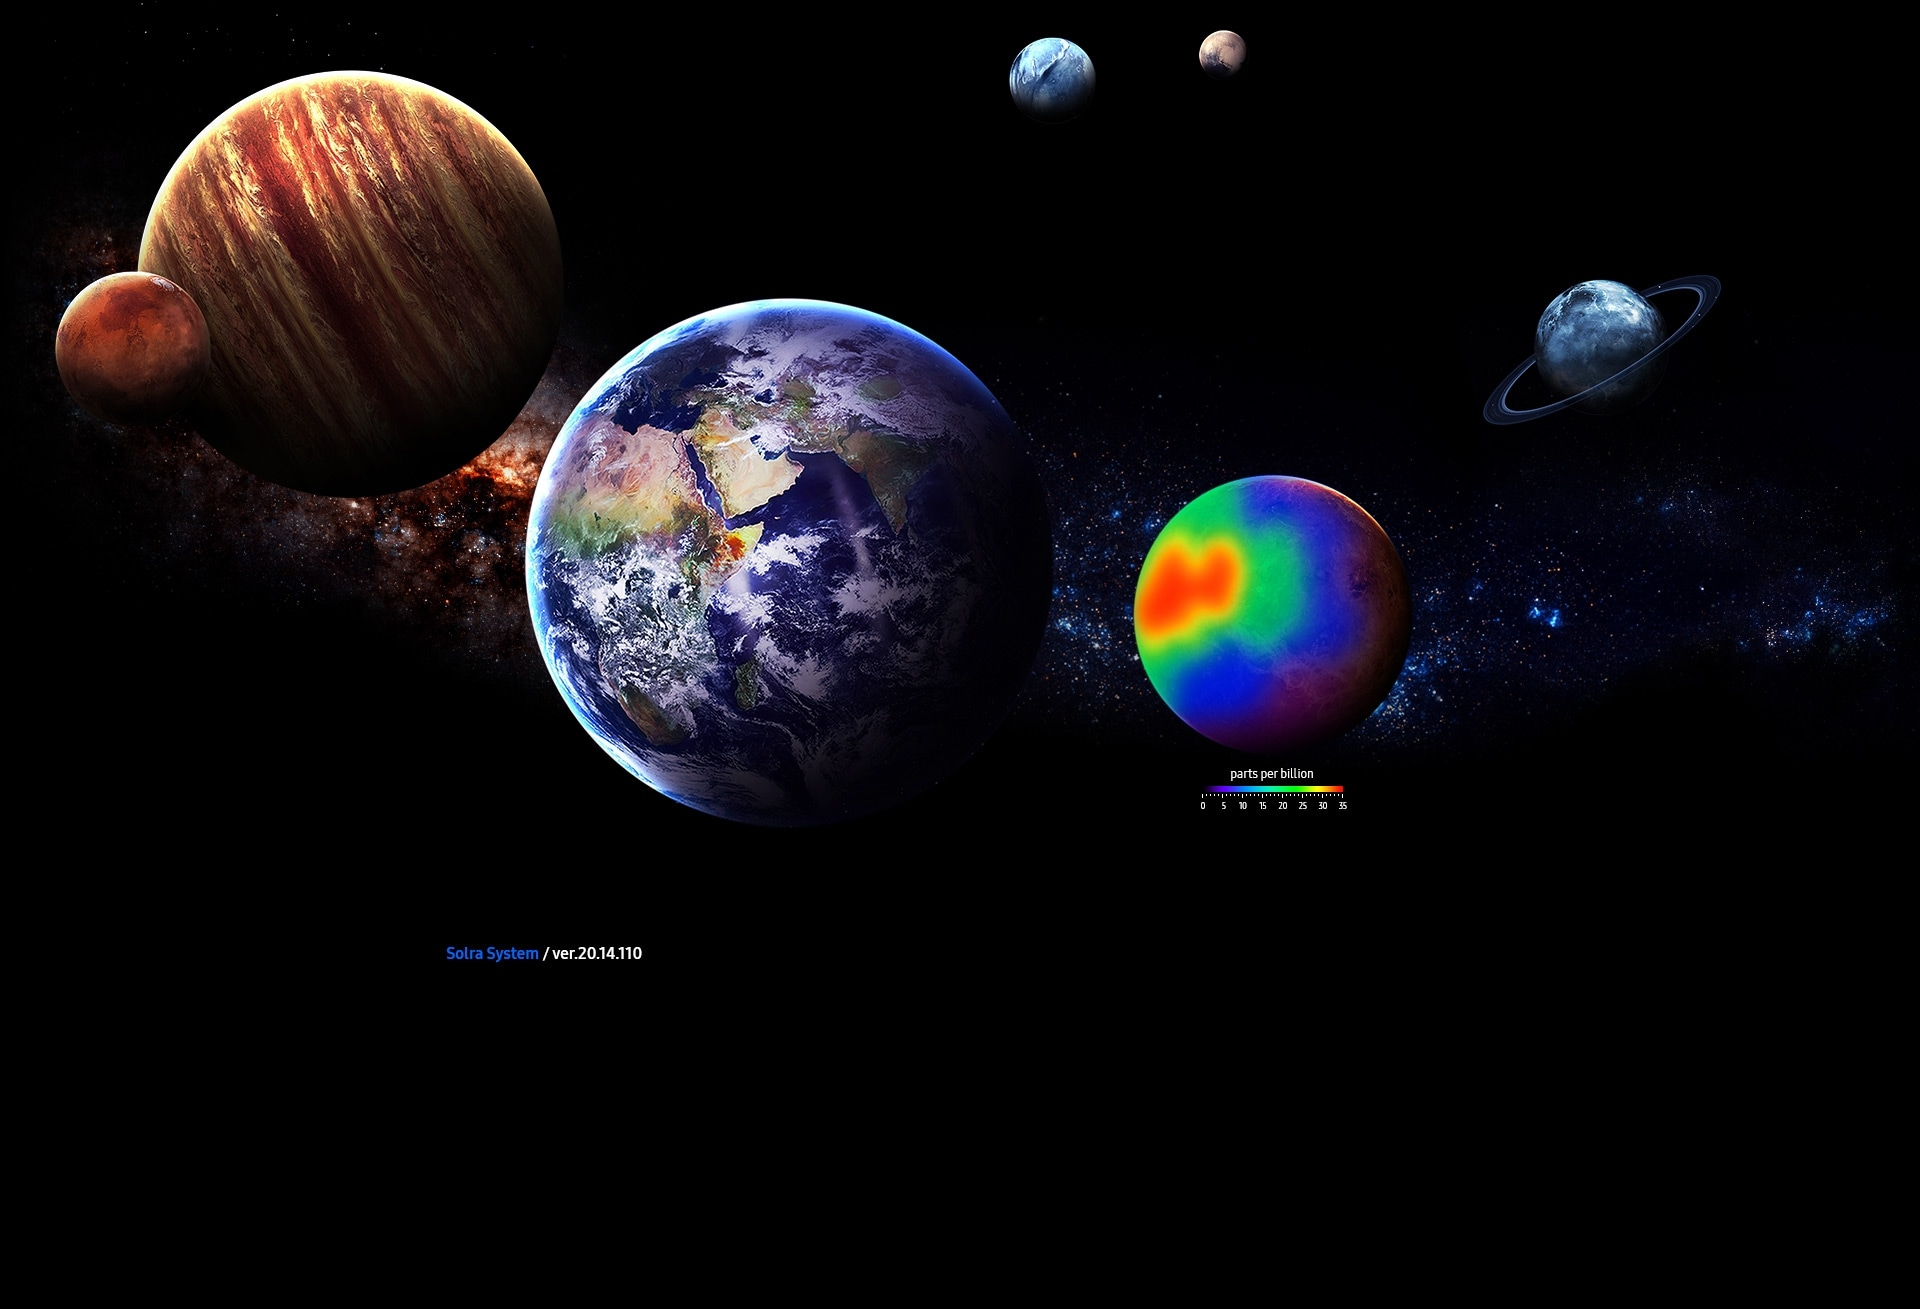 An image of a user's hands holding a black Galaxy Book 10.6 device, with its screen showing several planets in space.